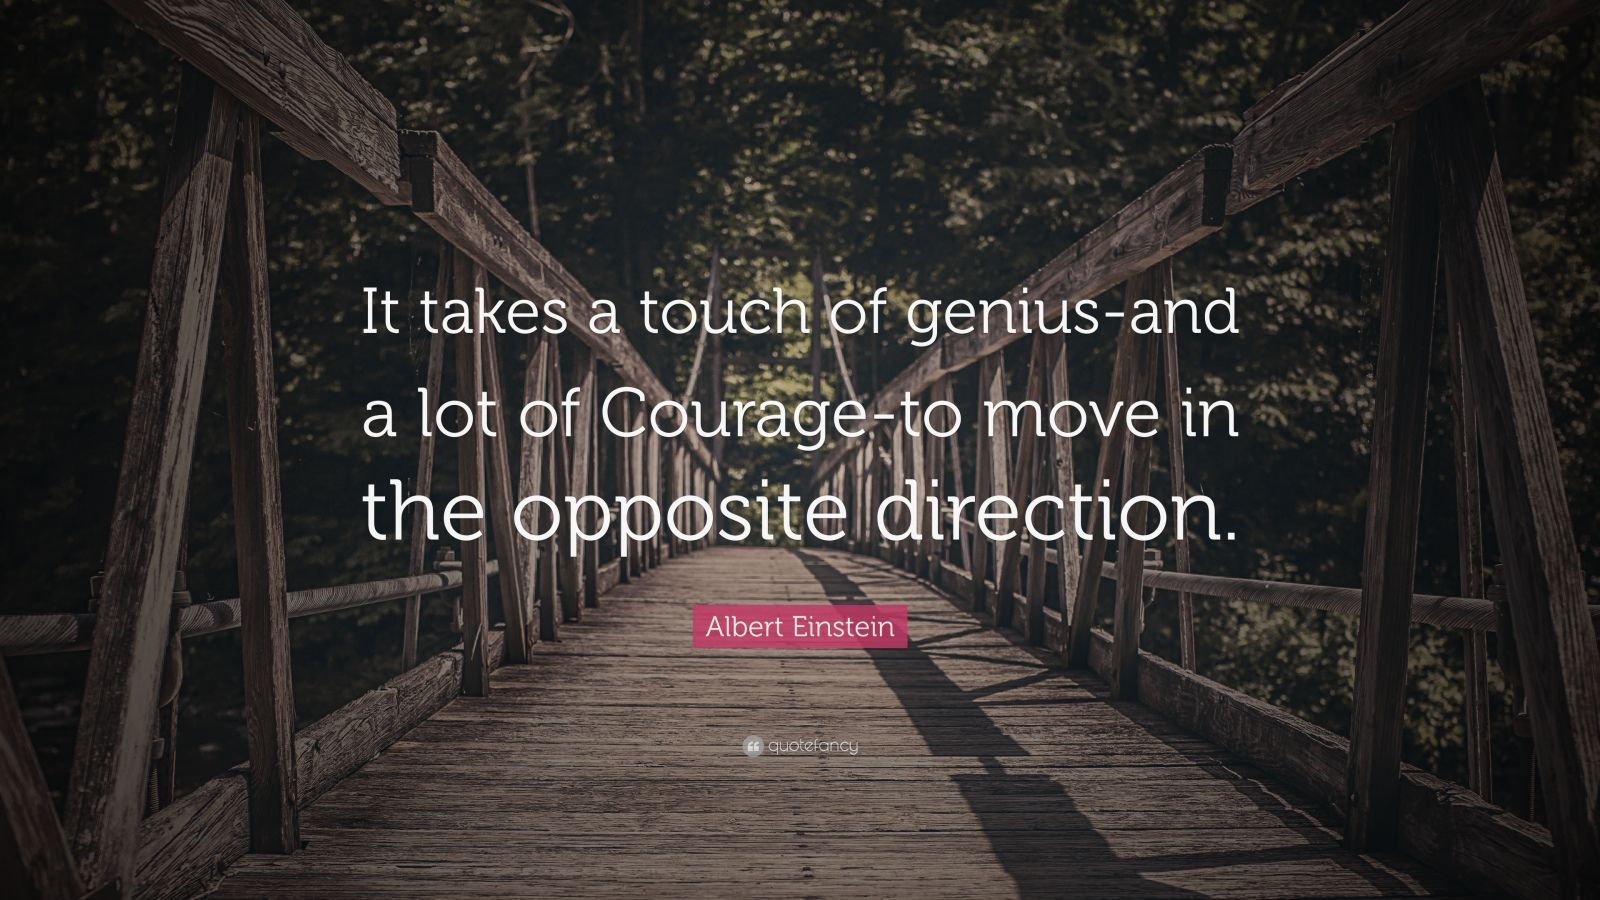 """Albert Einstein Quote: """"It takes a touch of genius-and a lot of Courage-to move in the opposite direction."""""""